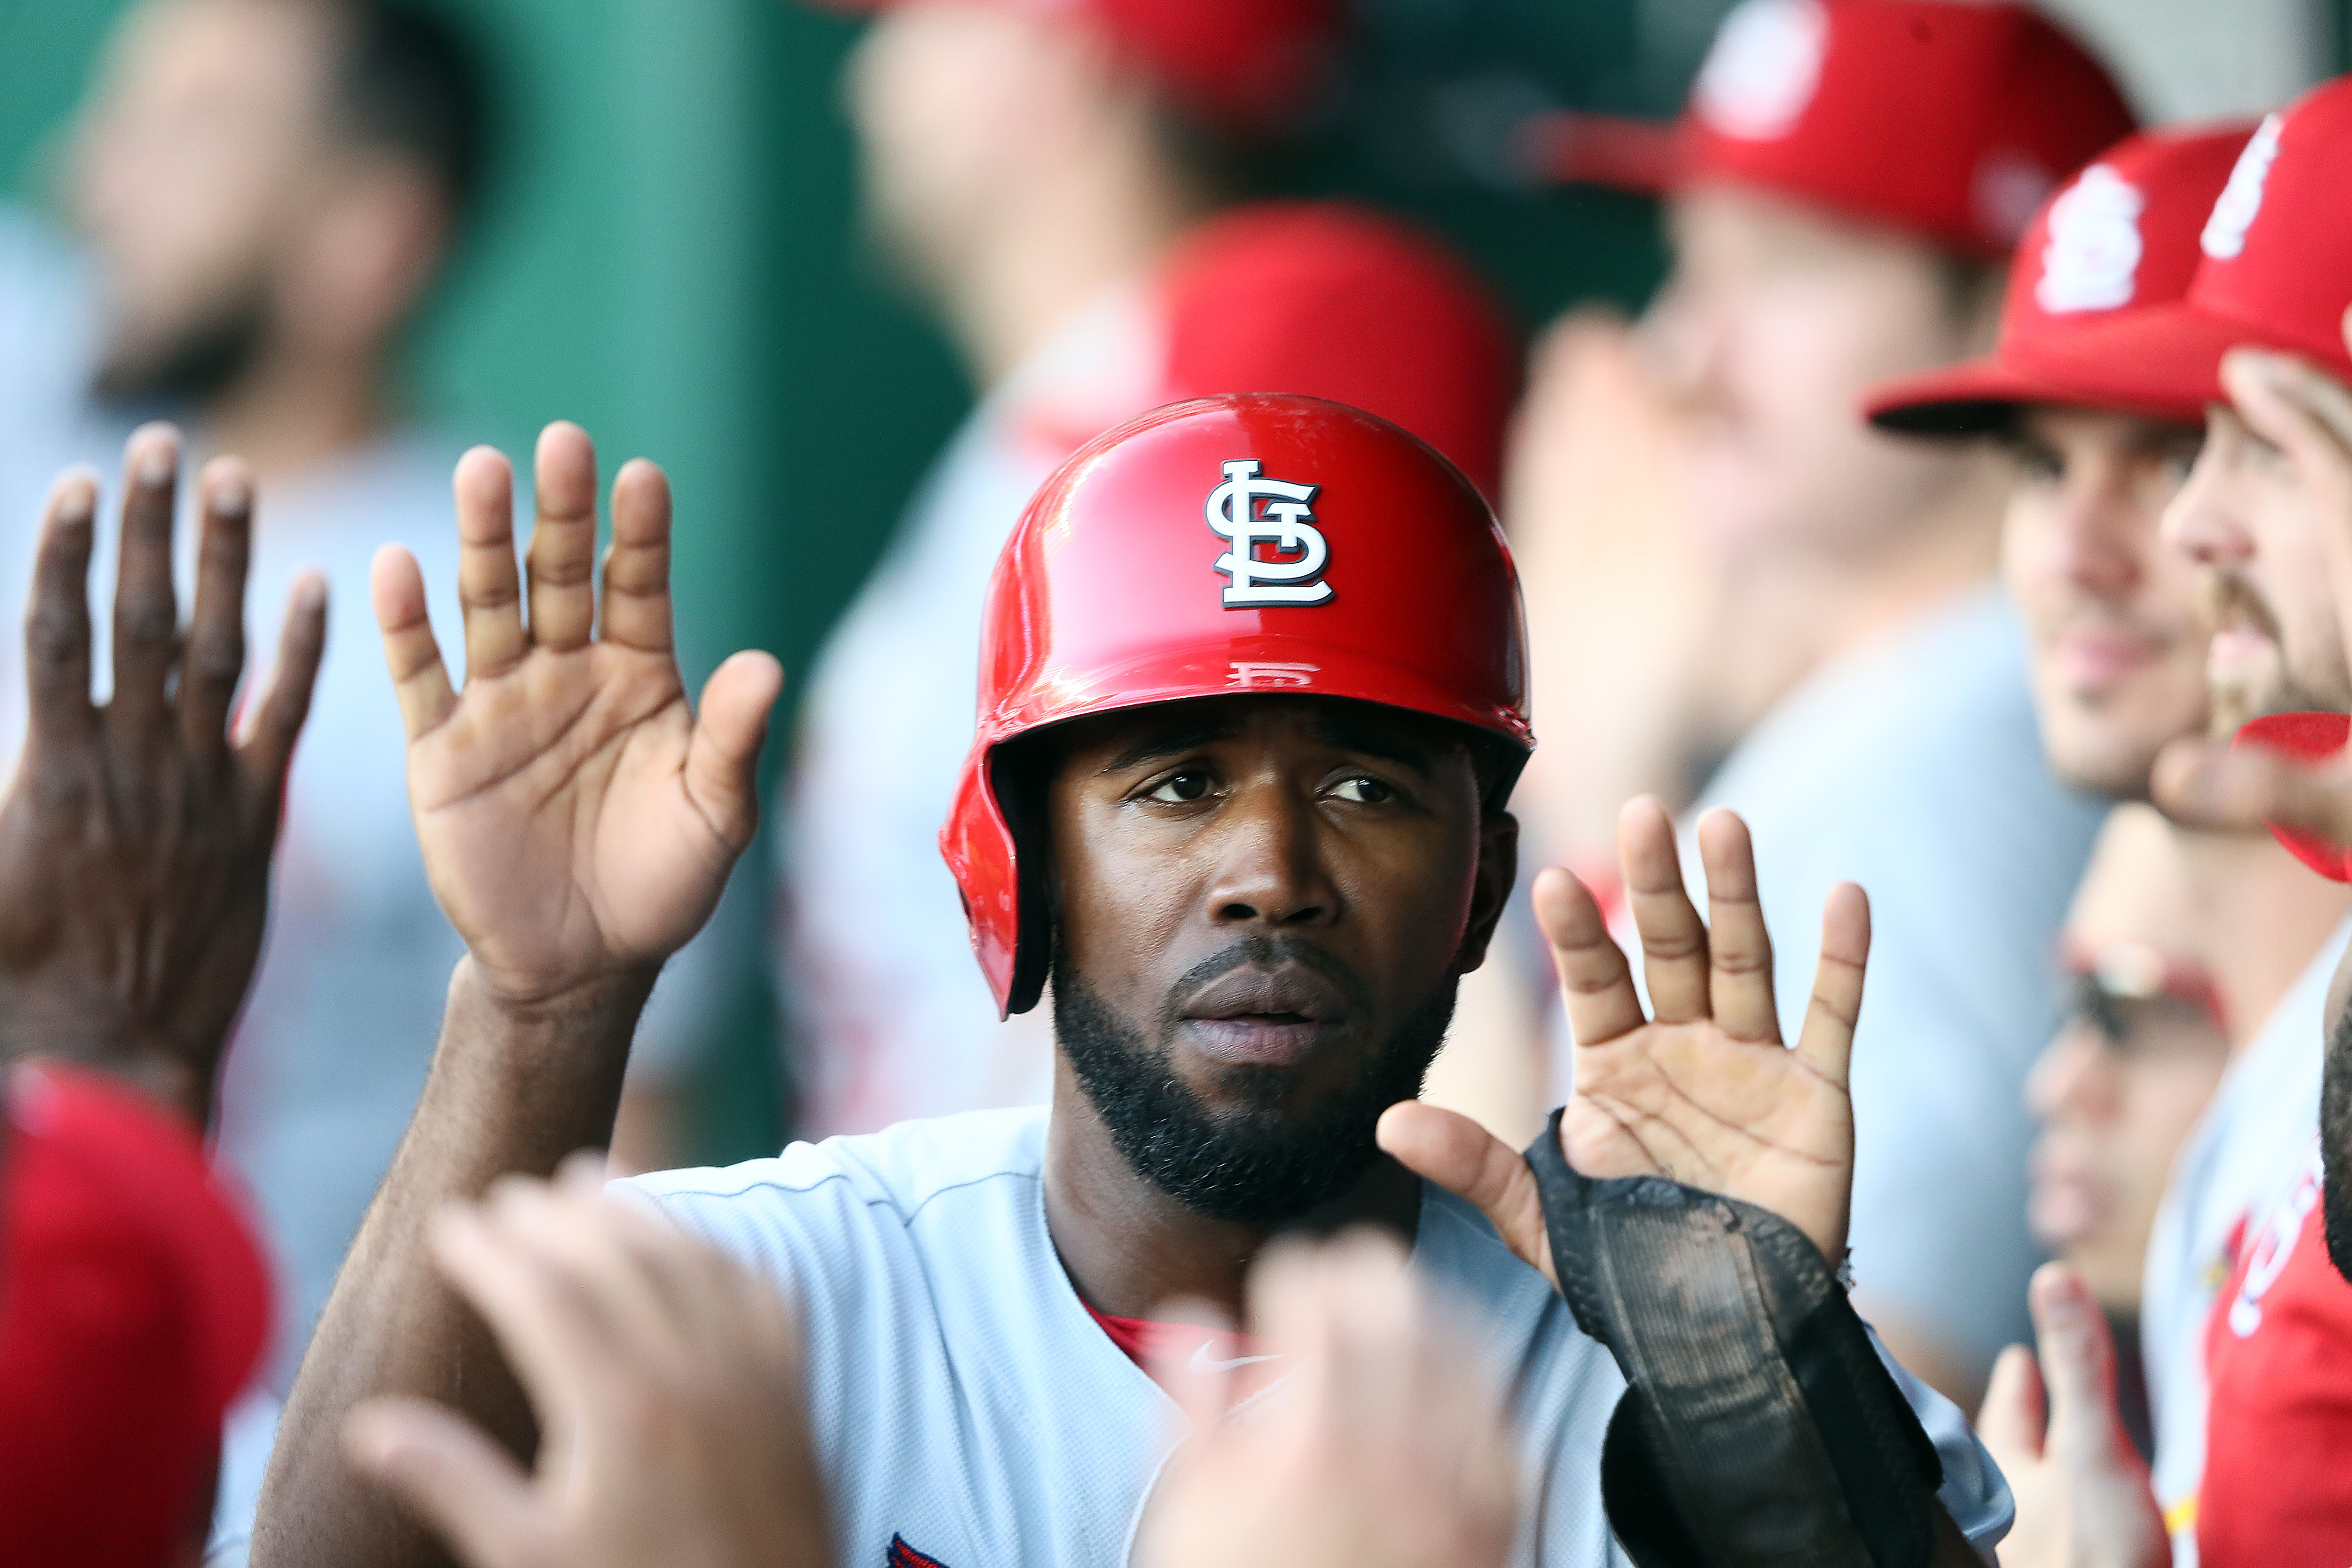 Dexter Fowler #25 of the St. Louis Cardinals is congratulated by teammates in the dugout after scoring during the 1st inning of the game against the Kansas City Royals at Kauffman Stadium on August 13, 2019 in Kansas City, Missouri.